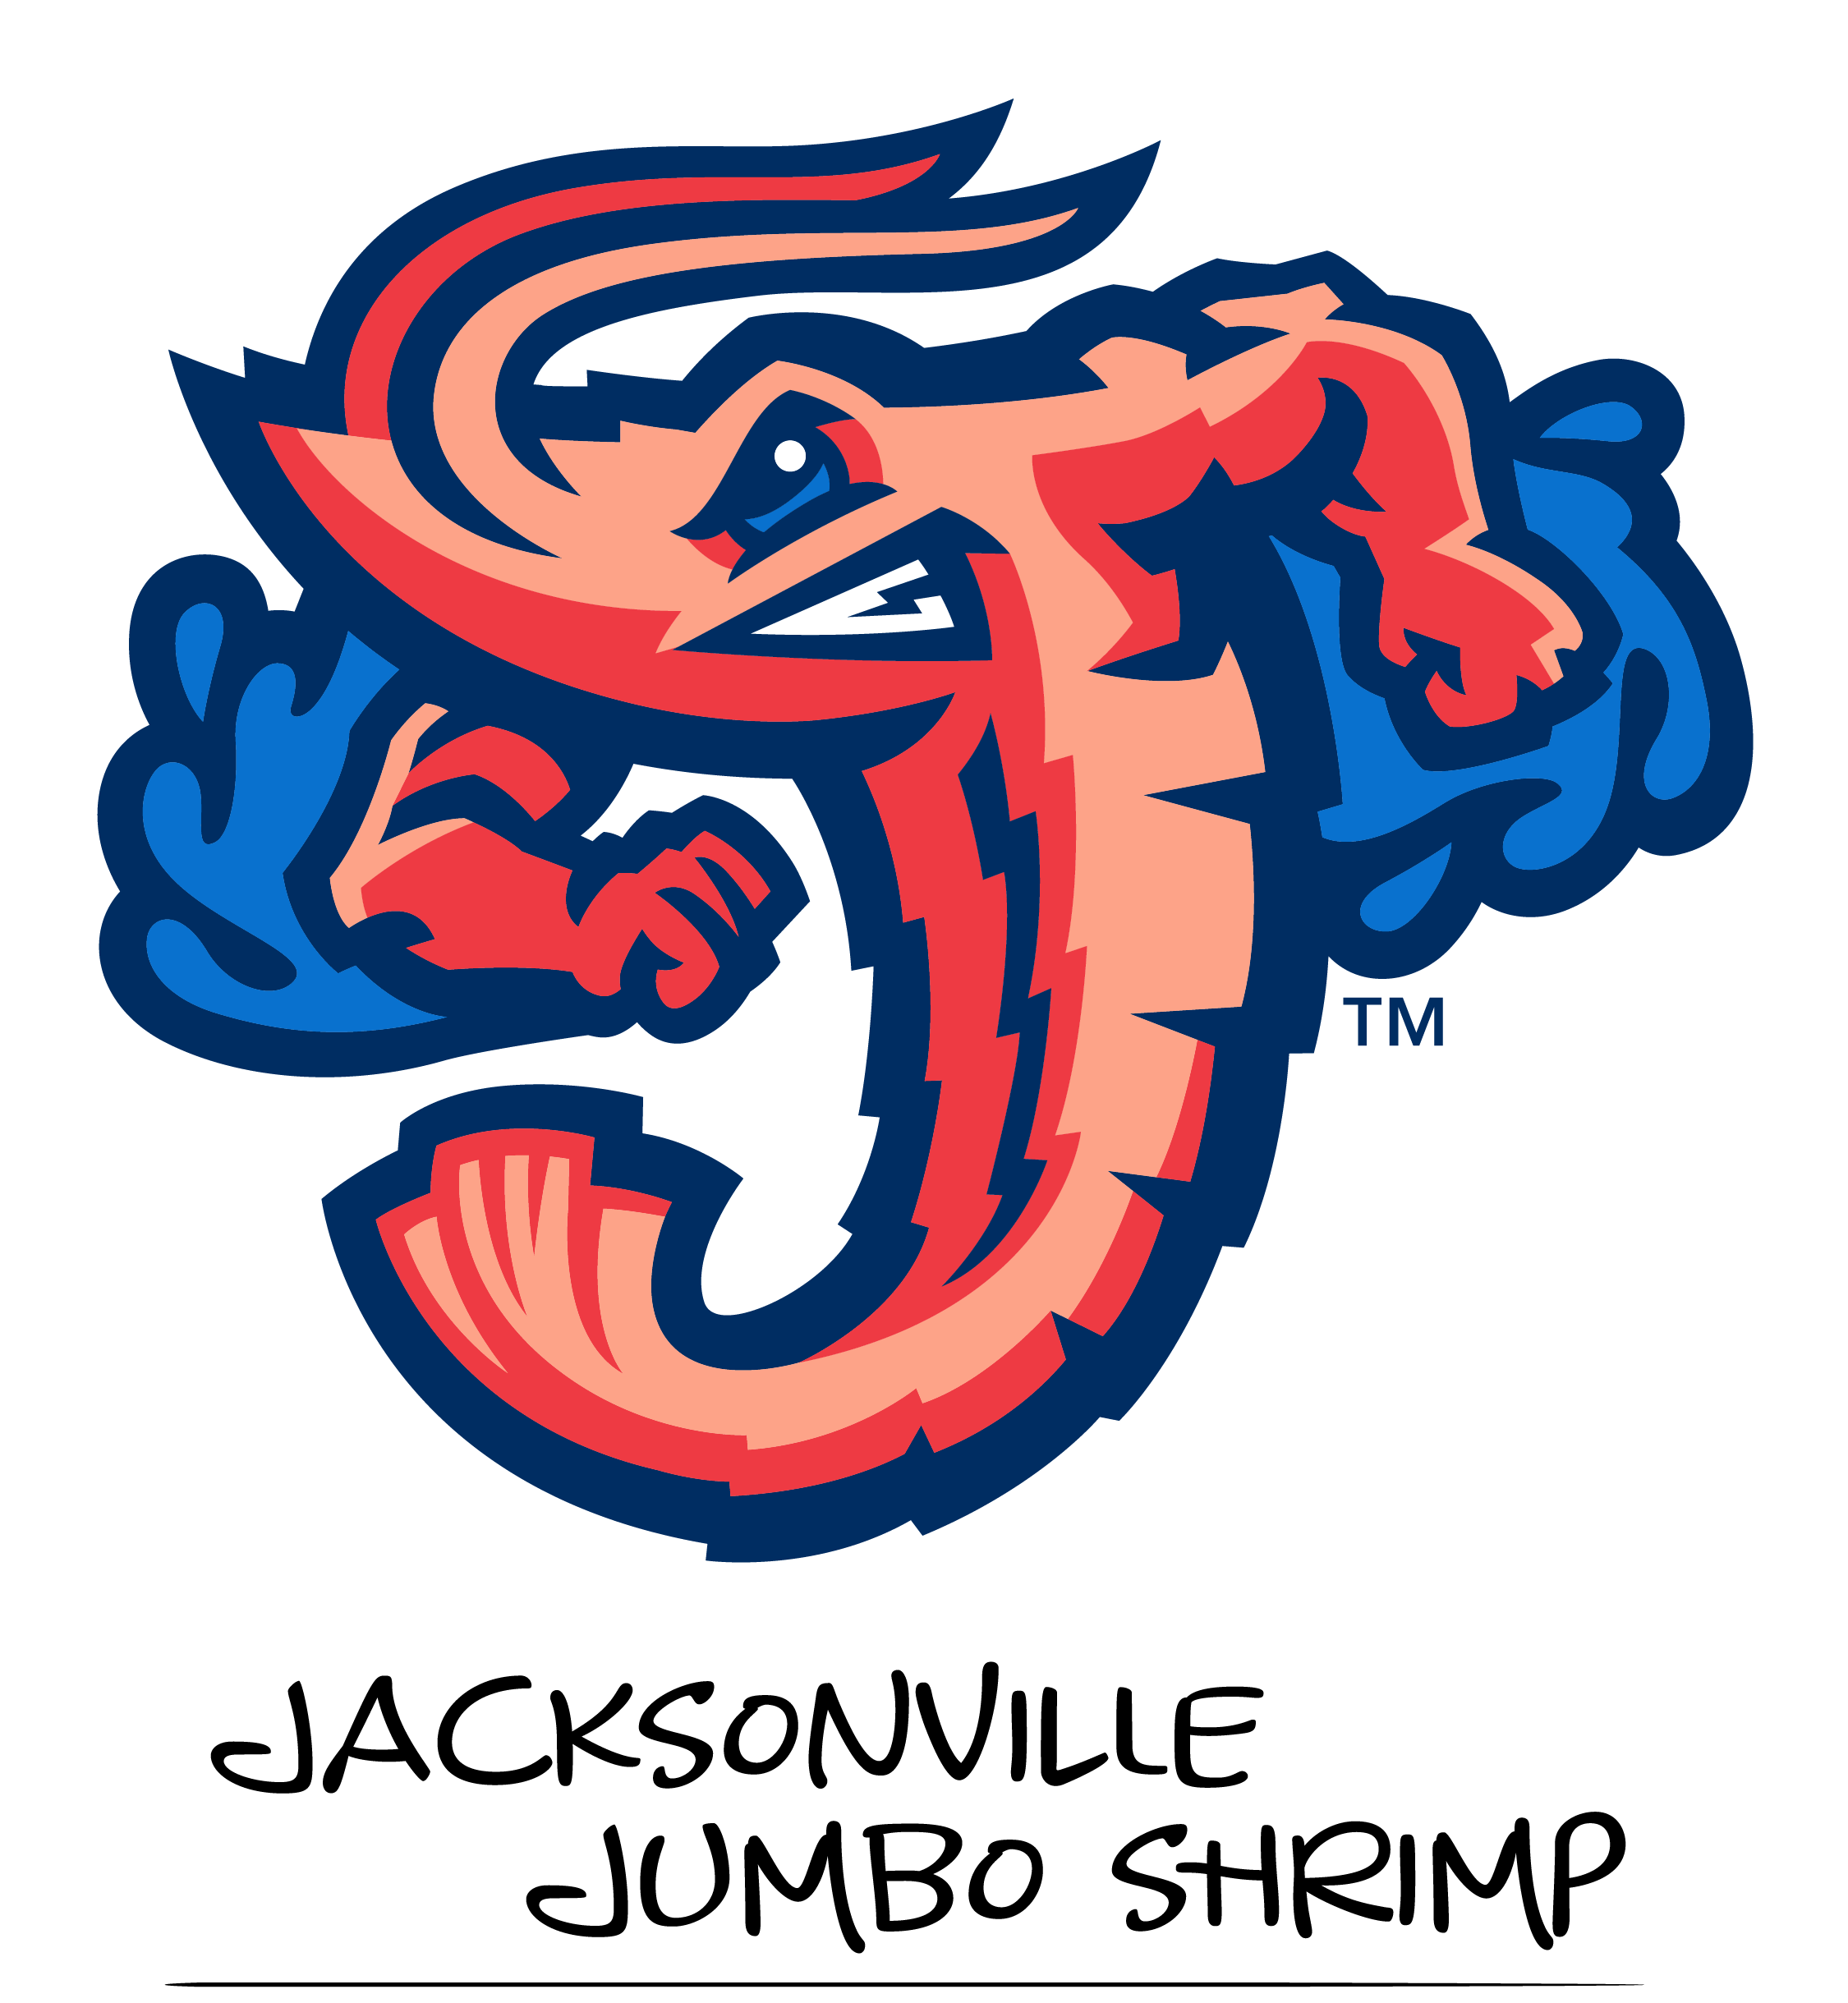 Jacksonville-1-IntroResearch_Primary.png